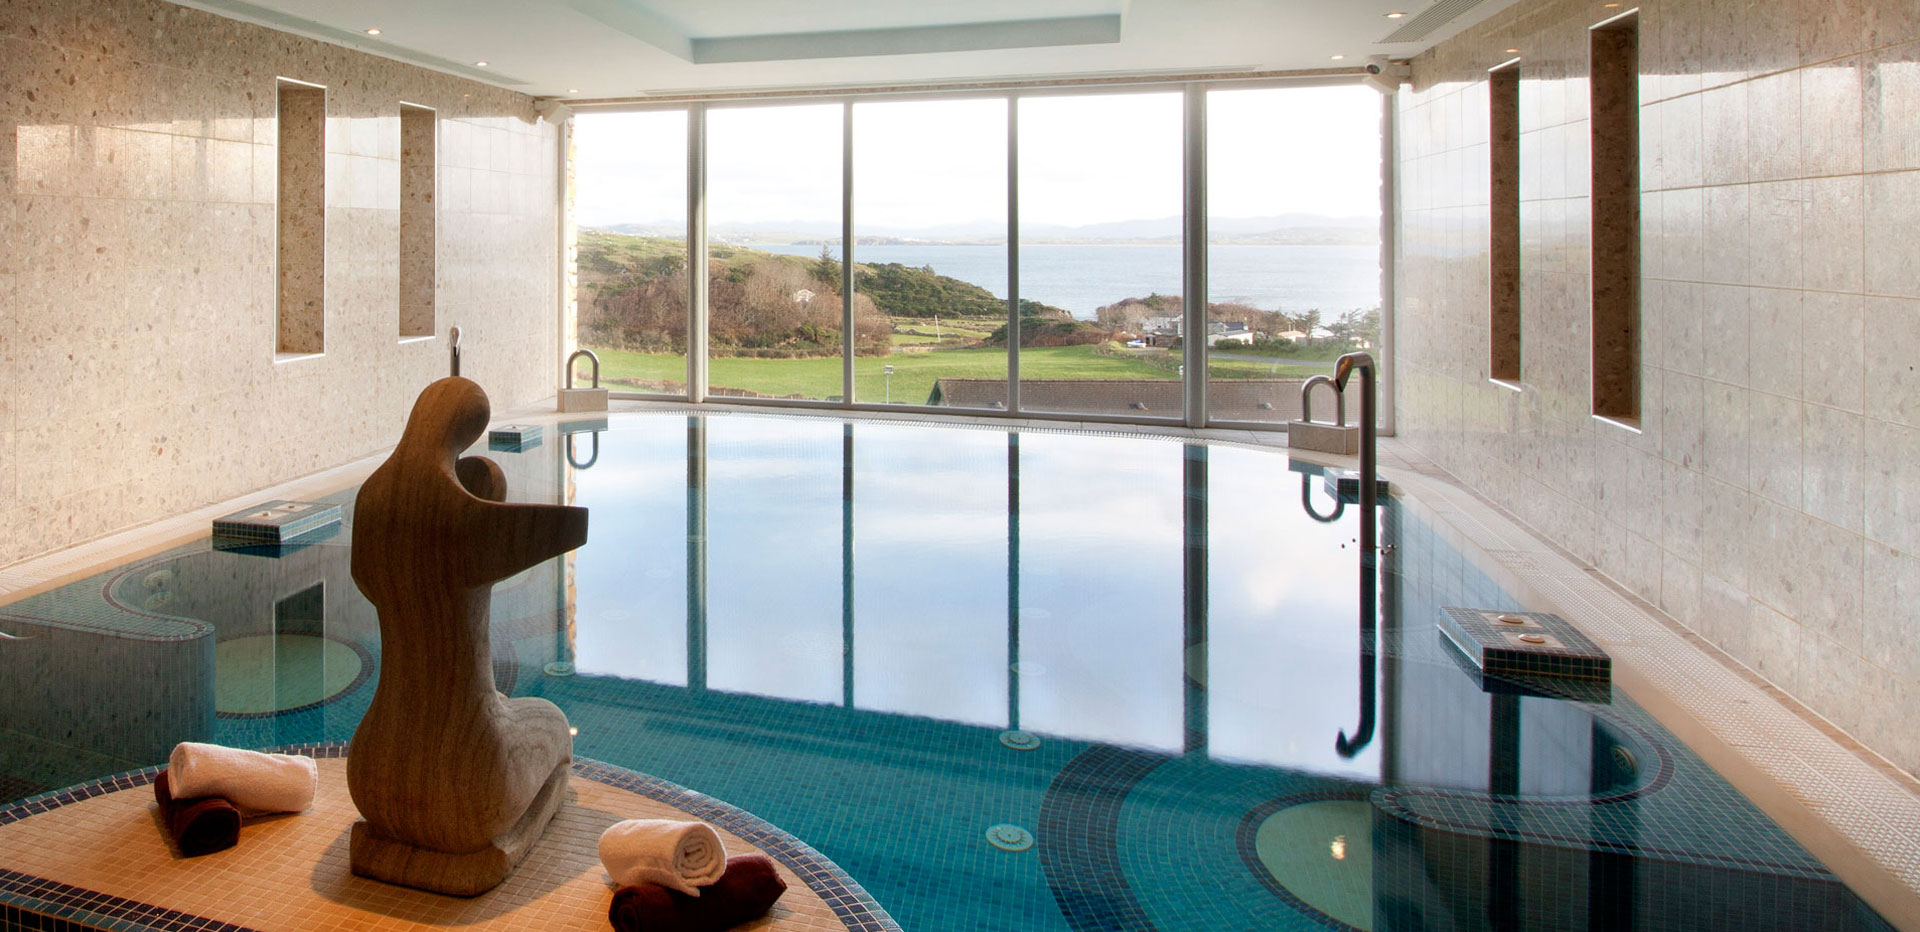 The Shandon Hotel Donegal Hotels 4 Star Hotels Ireland